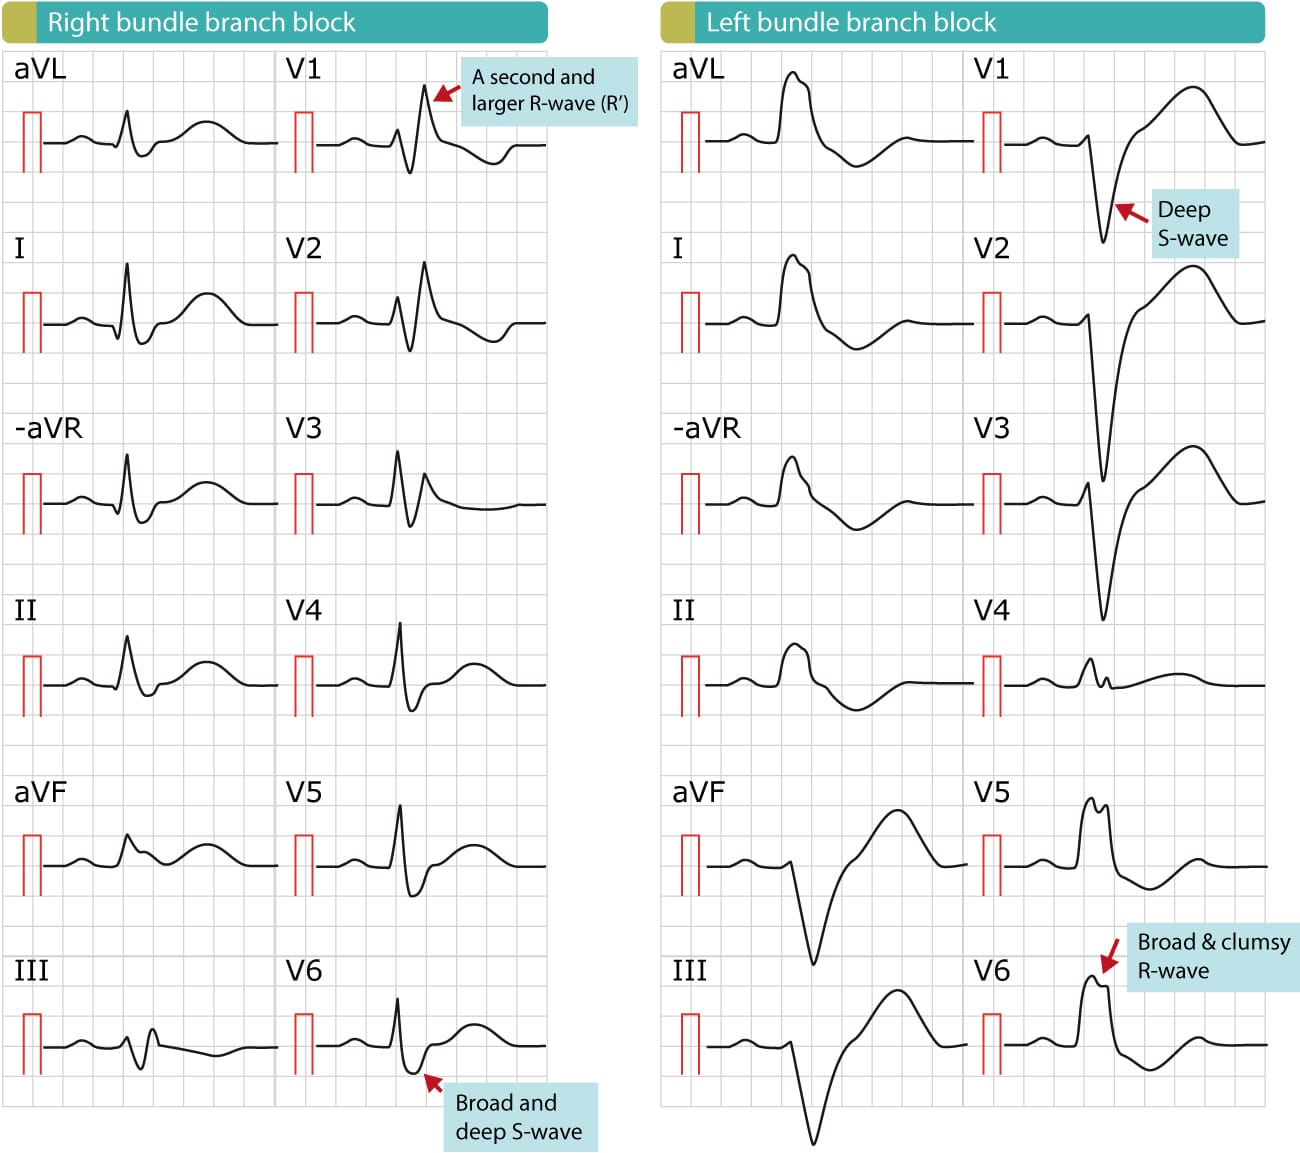 Figure 2. Right bundle branch block (RBBB) and left bundle branch block (LBBB). Note that the paper speed is 50 mm/s (1 large box equals 100 ms). The hallmark of both RBBB and LBBB is the QRS duration which is by definitions 120 ms or longer. The distinction between RBBB and LBBB is simple, as illustrated in this figure.